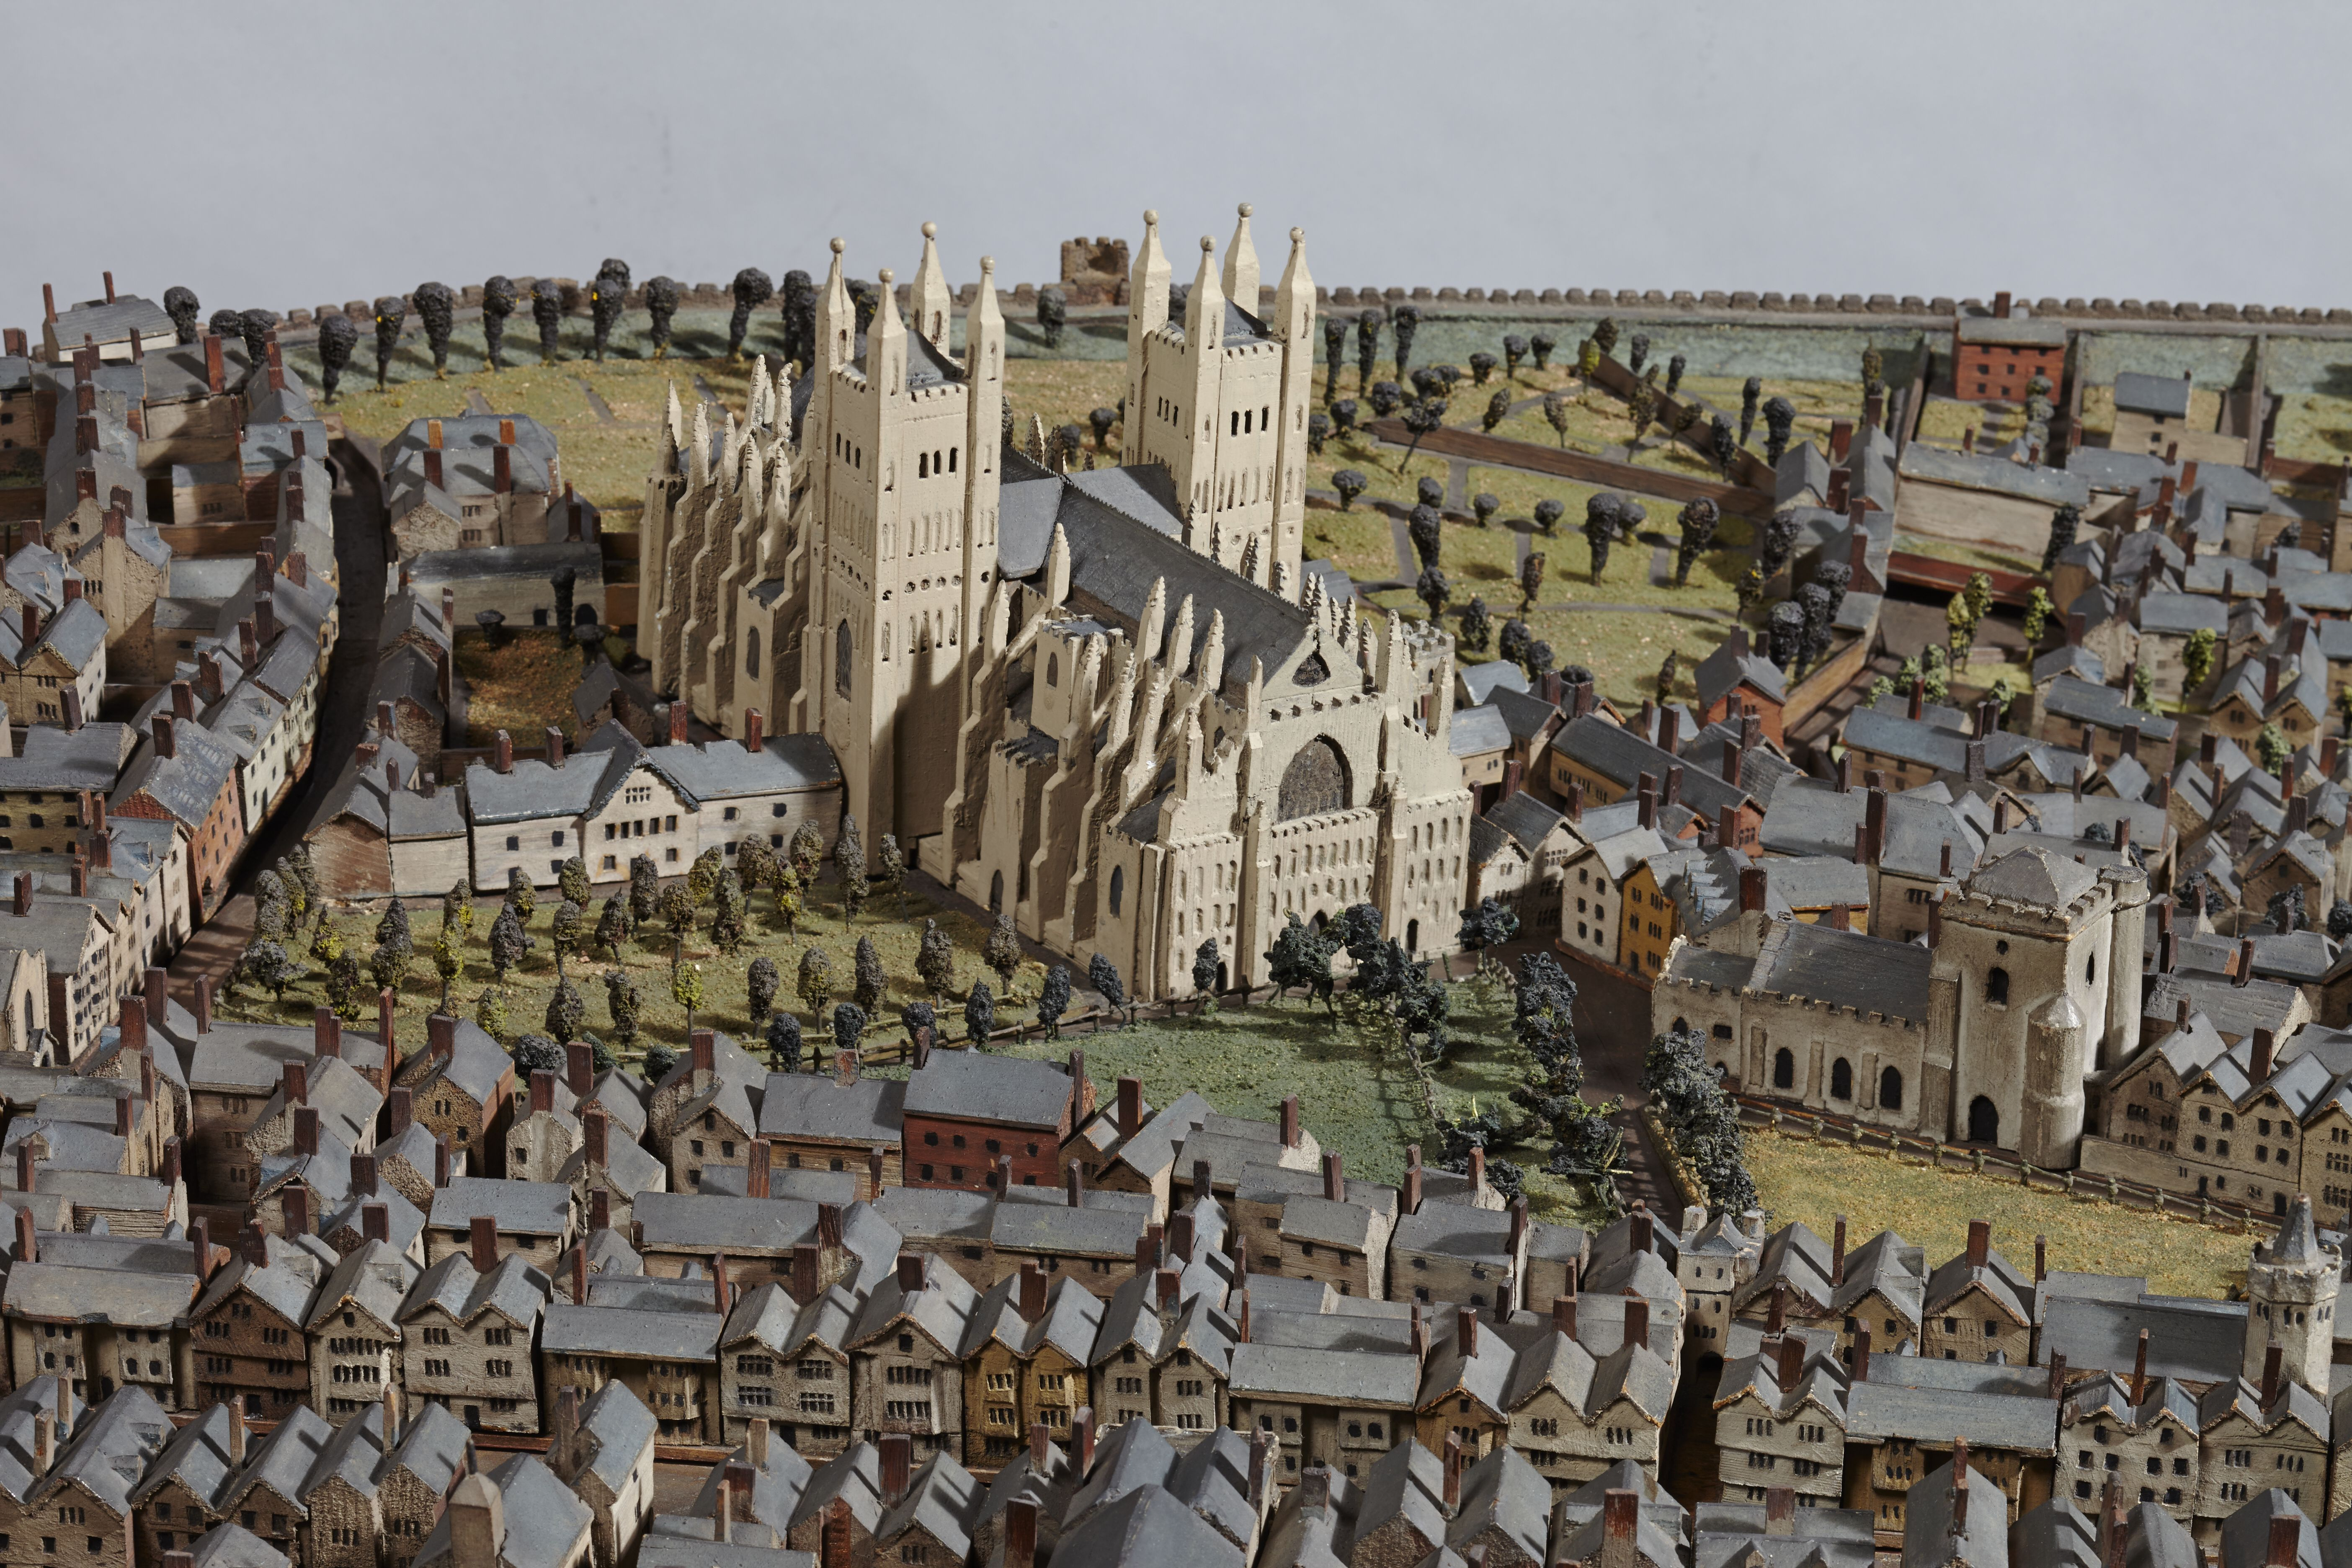 Hedgeland's model of Exeter, Making History gallery